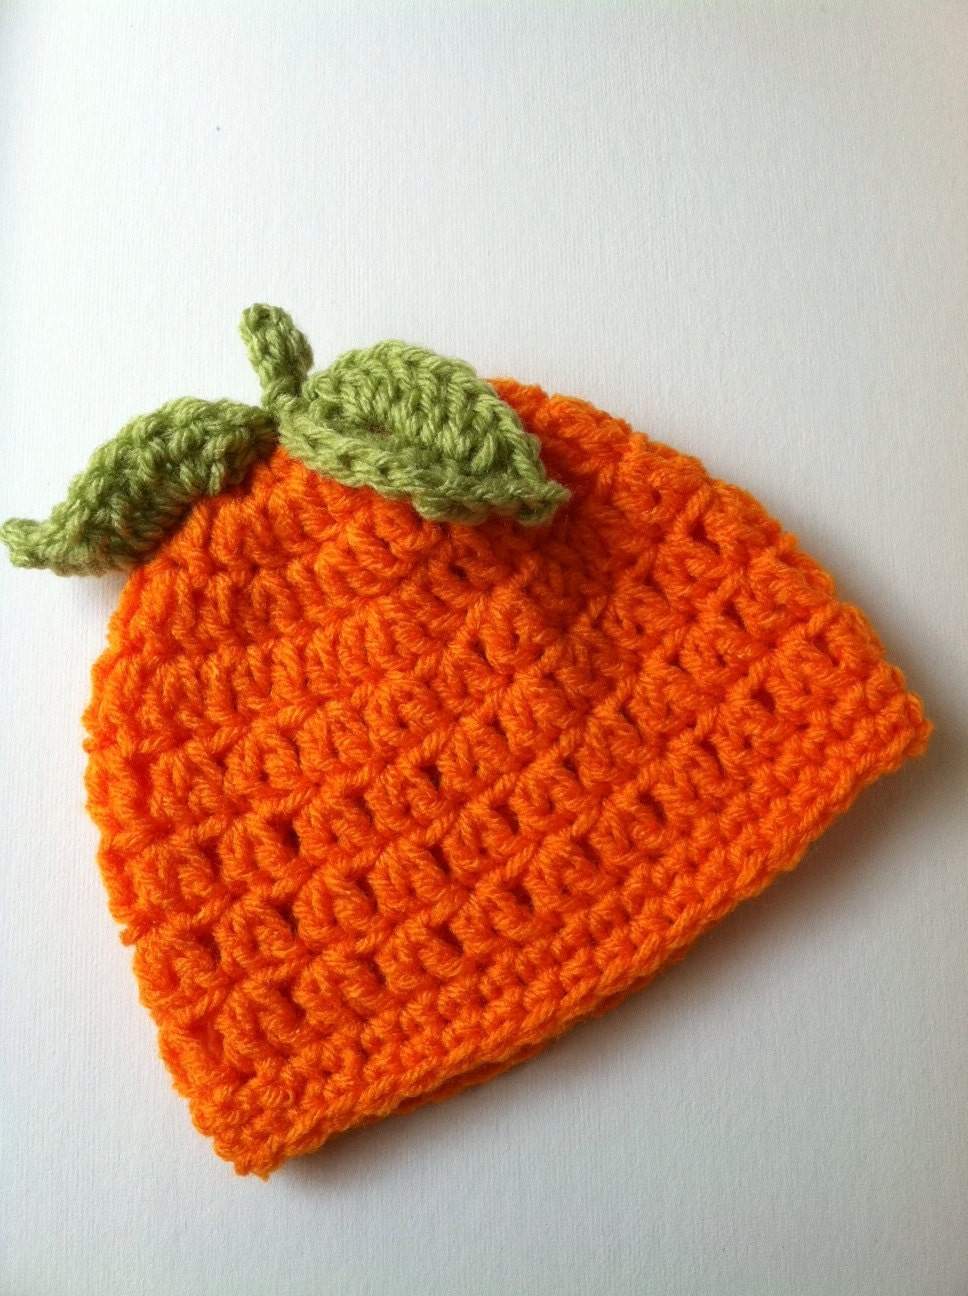 Crochet Pattern For Baby Witch Hat : Halloween Crochet Baby Hat Orange Pumpkin Baby Hat Newborn